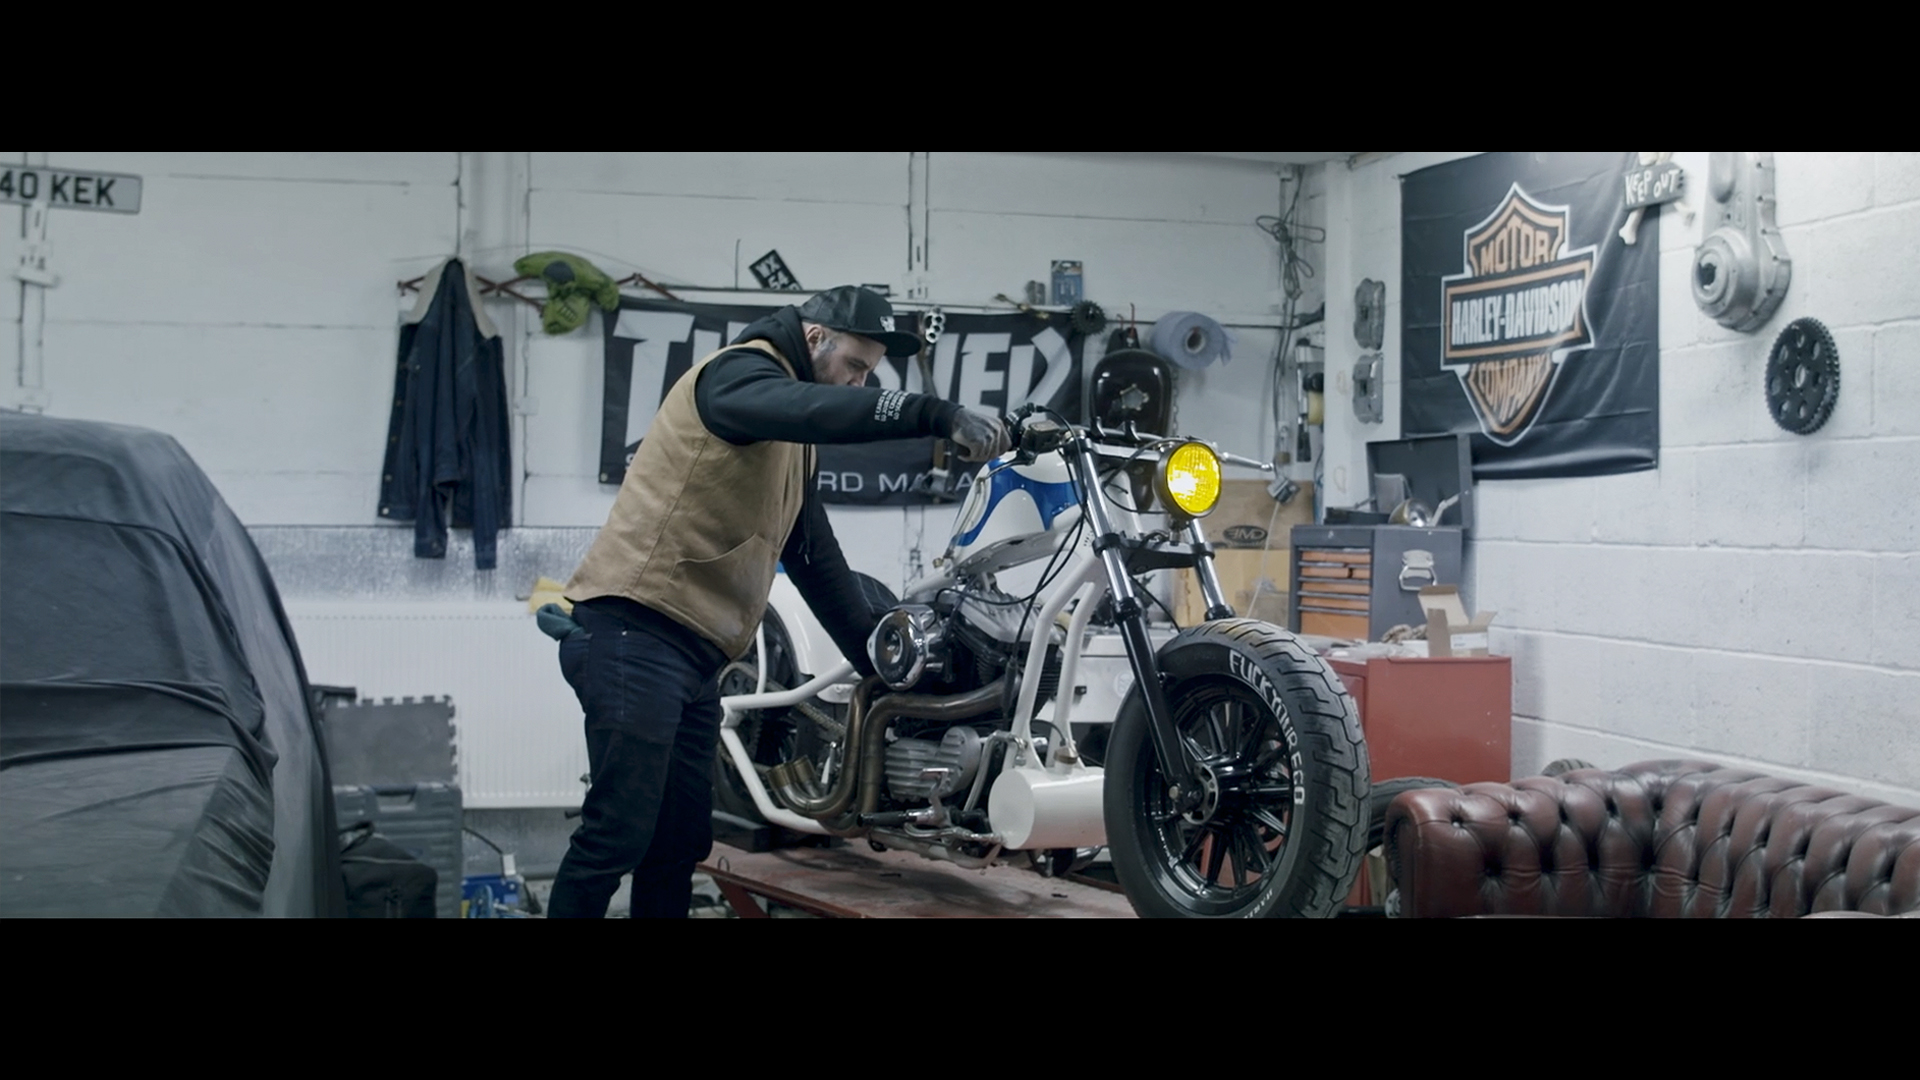 Harley Davison Iron Sportster 883 Video Production North East England Barbers Corporate Video